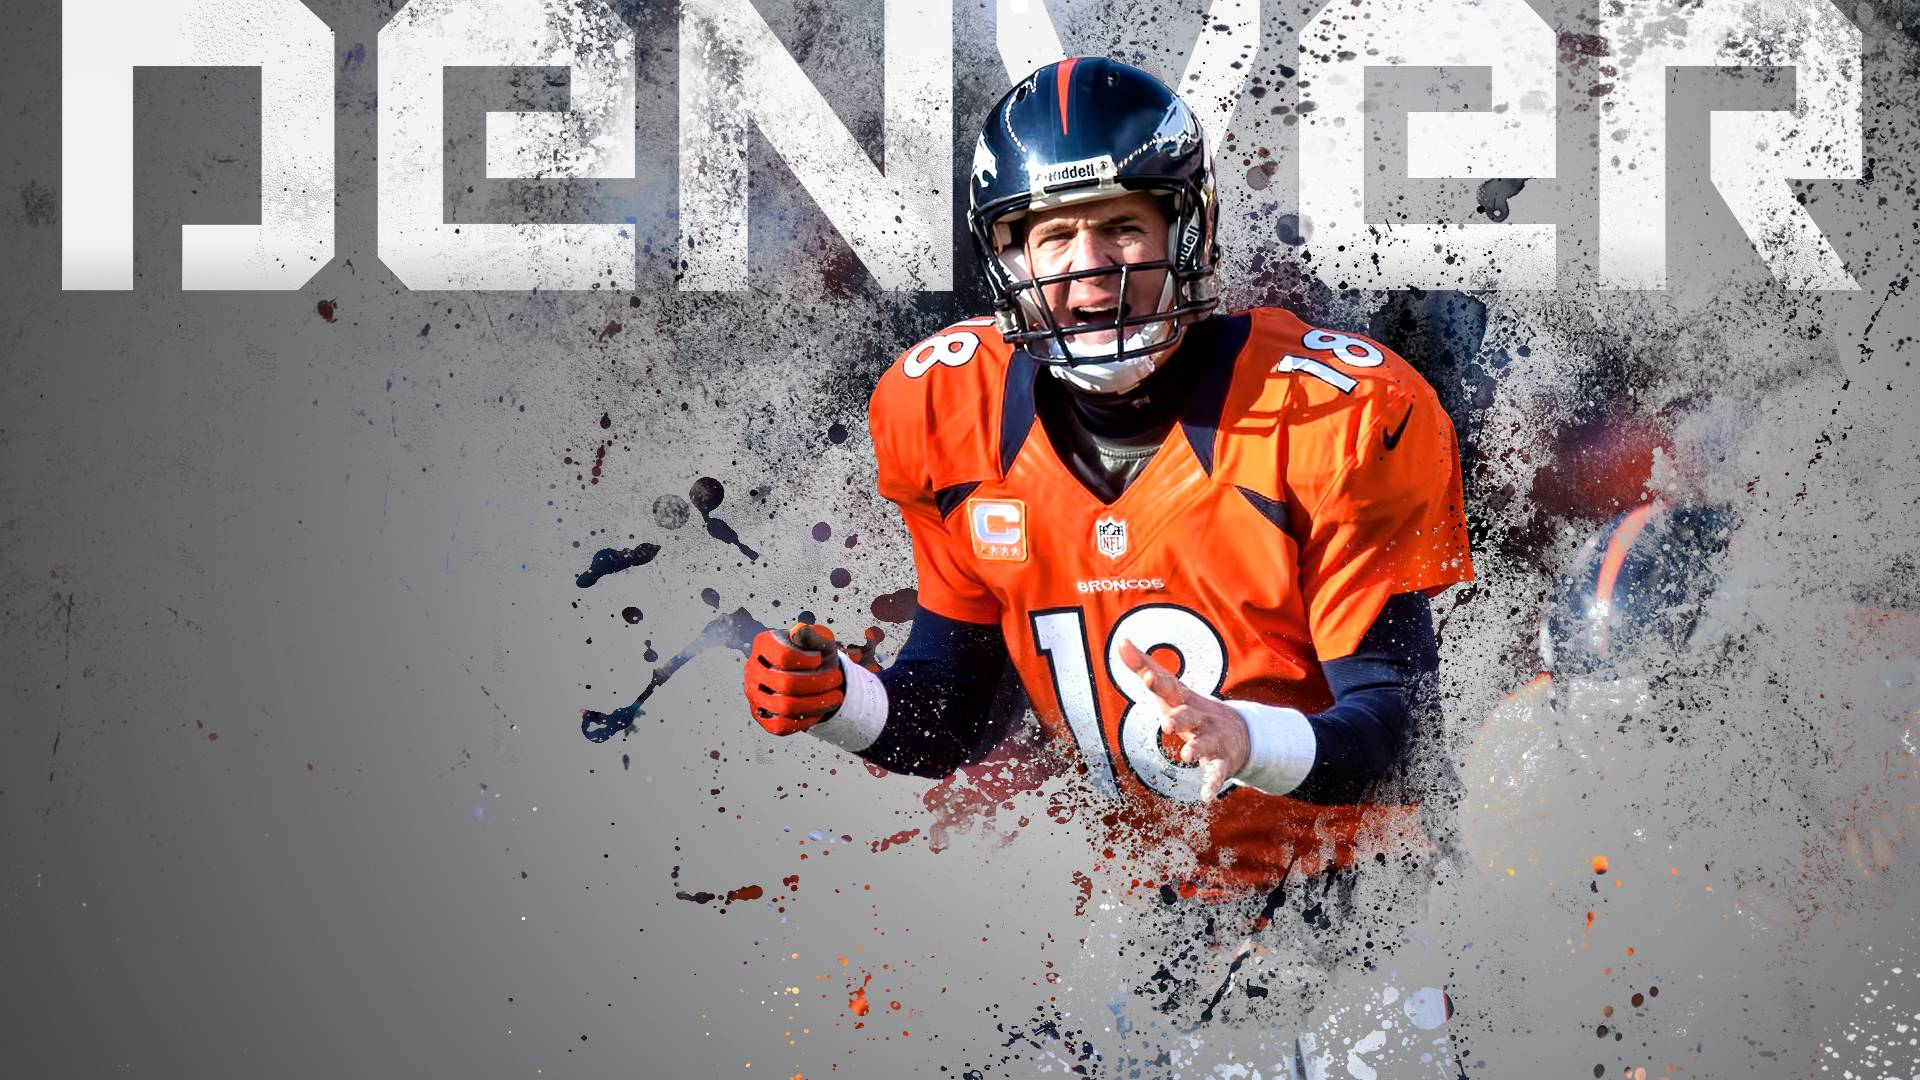 Top 10 HD Peyton Manning Wallpapers